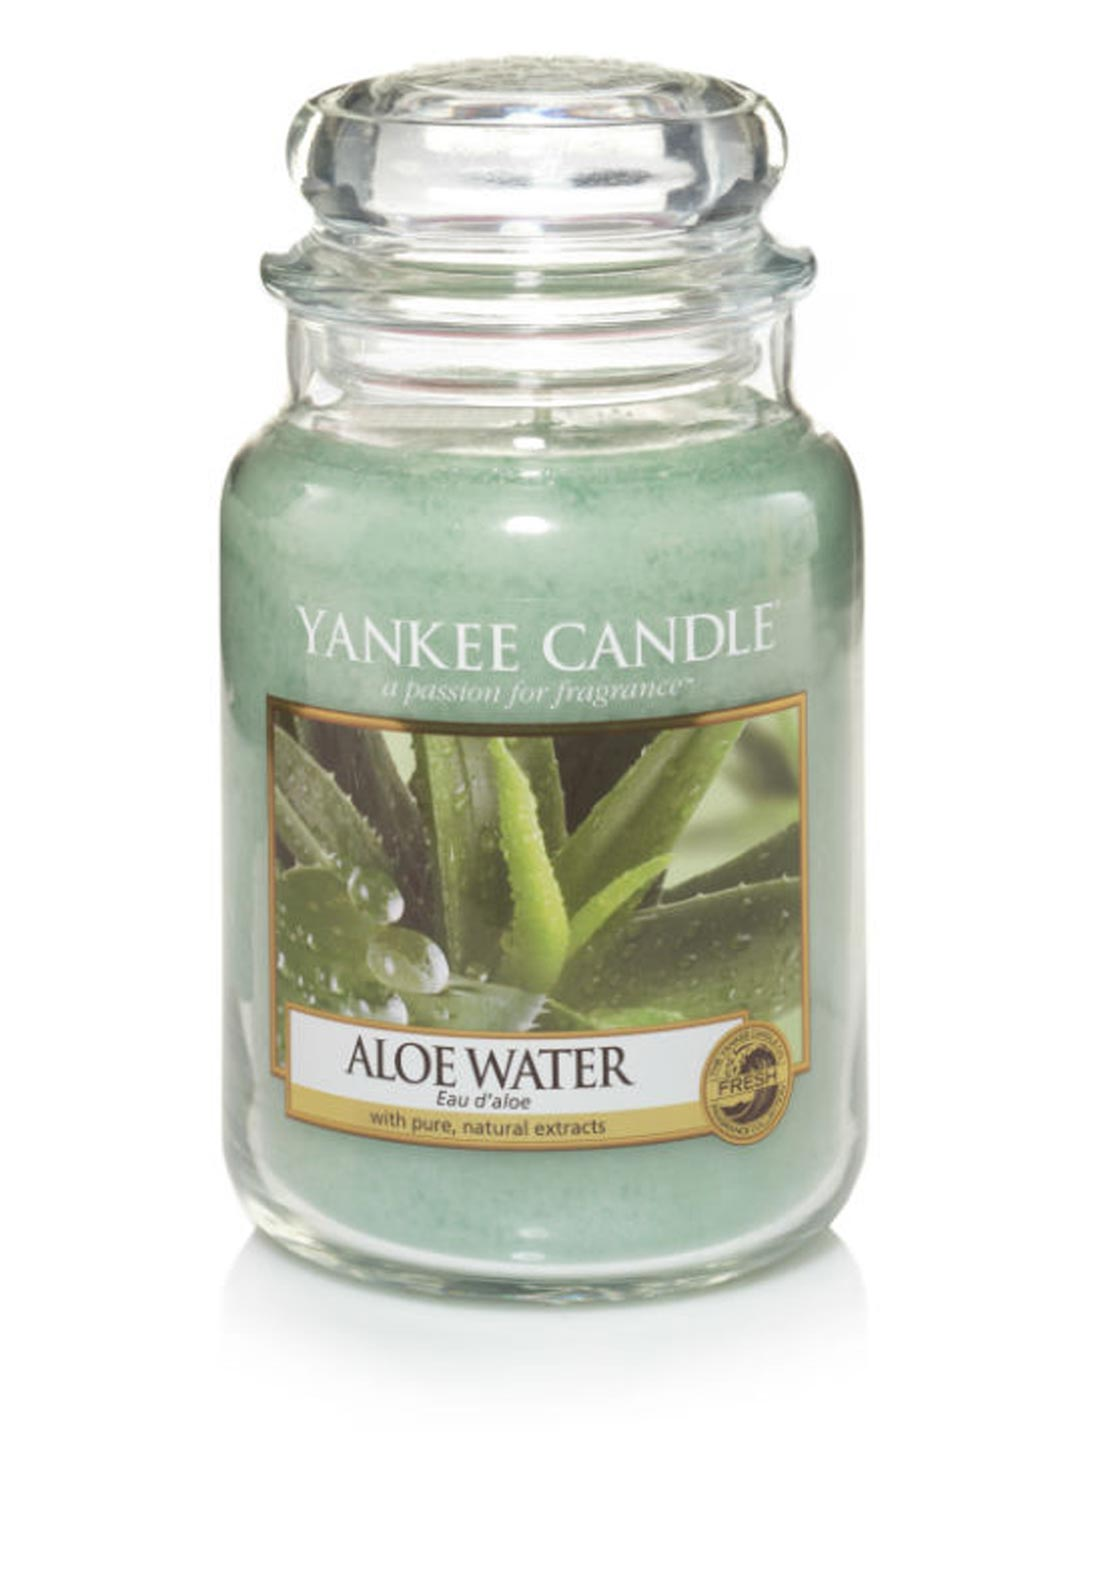 Yankee Candle Large Classic Jar, Aloe Water